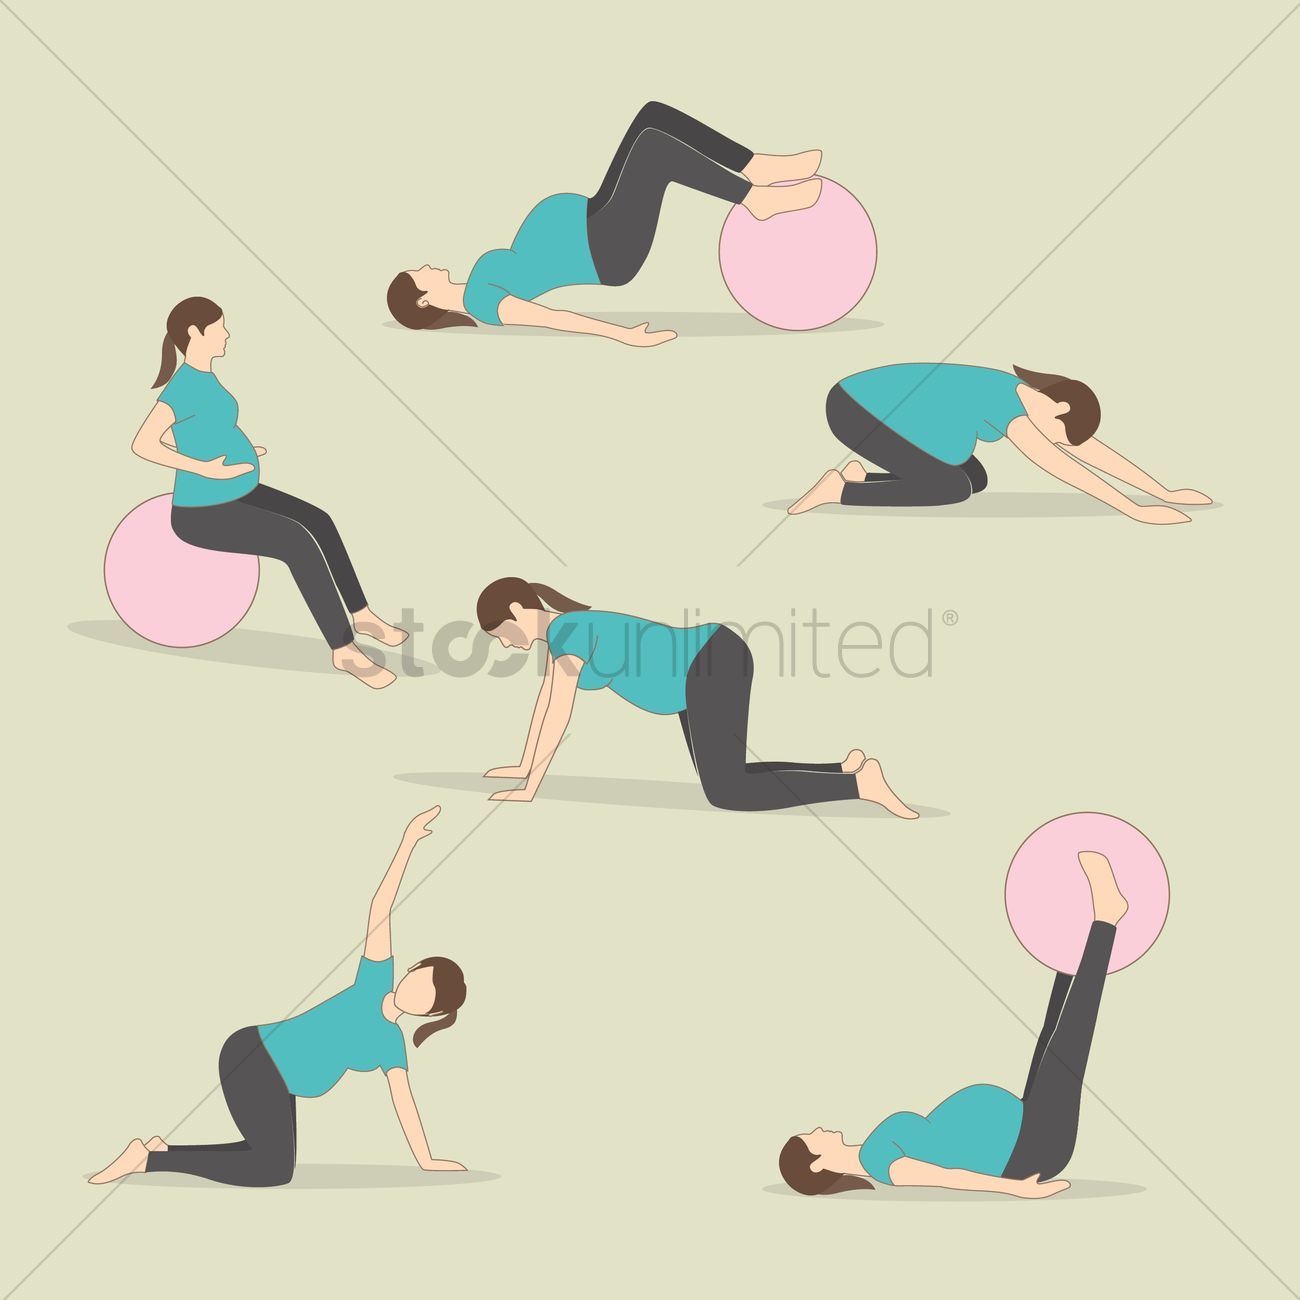 Set of pregnancy exercises Vector Image - 1971111 | StockUnlimited